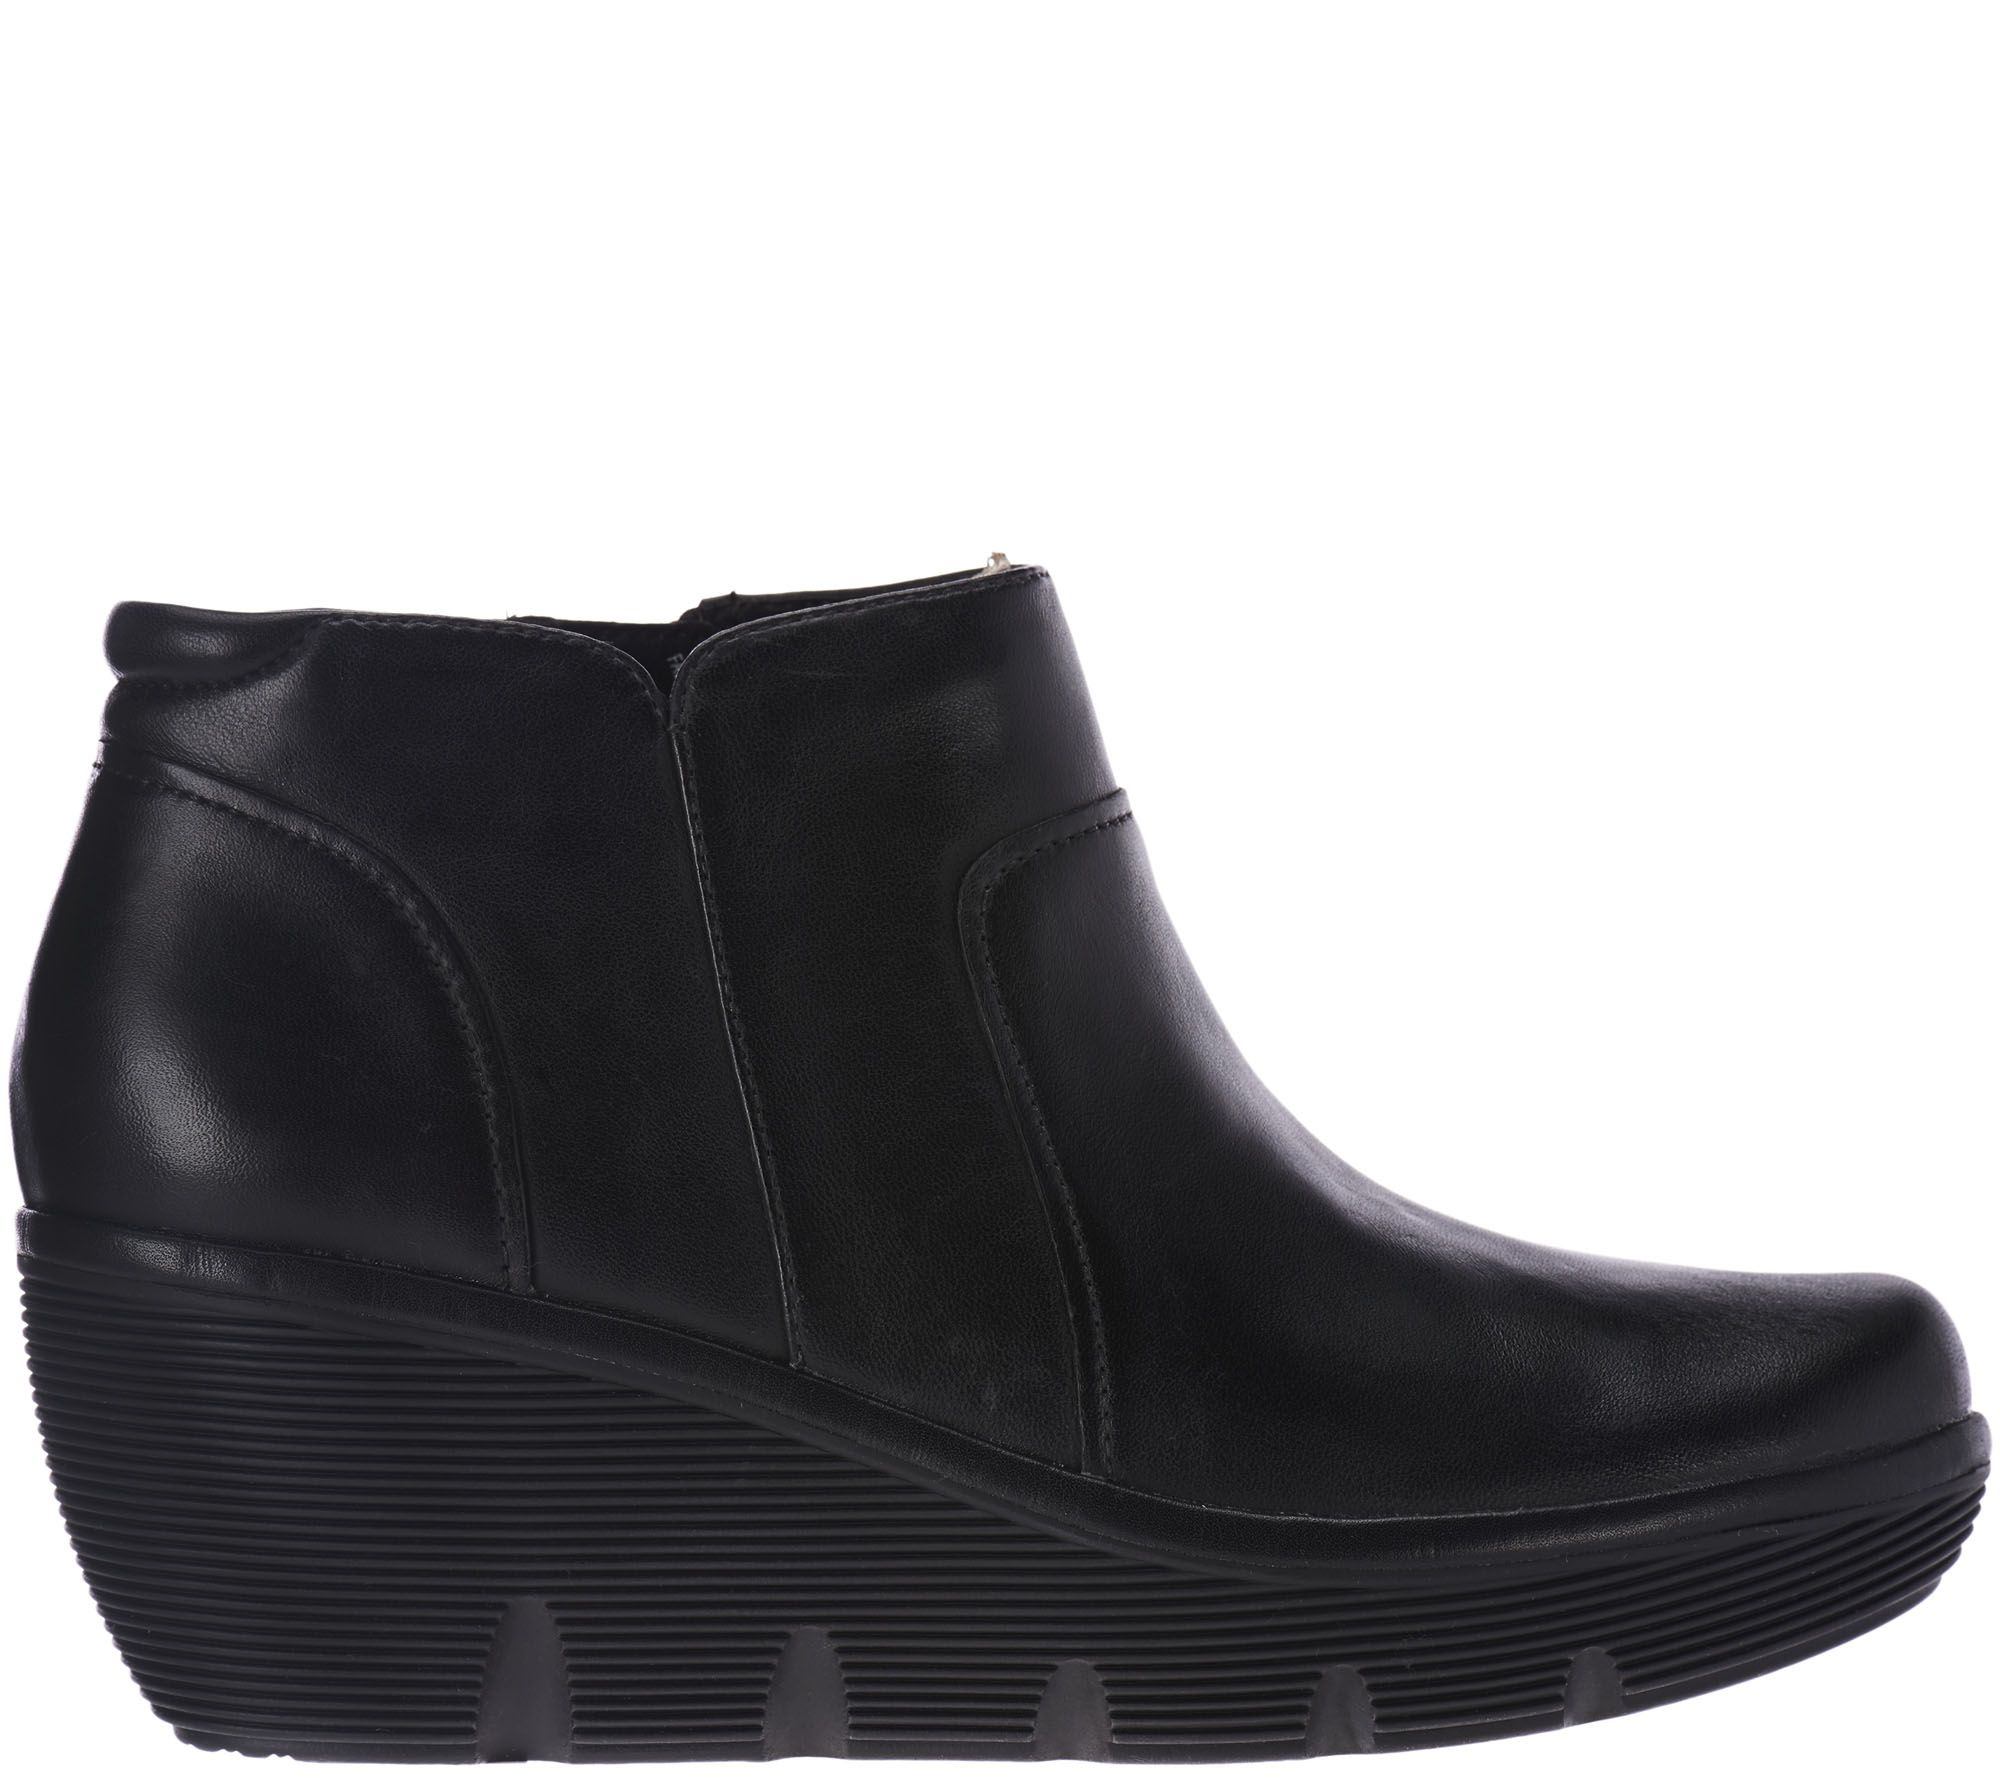 370ae7a8361 Clarks Artisan Leather Wedge Ankle Boots - - Clarene Sun - Page 1 — QVC.com